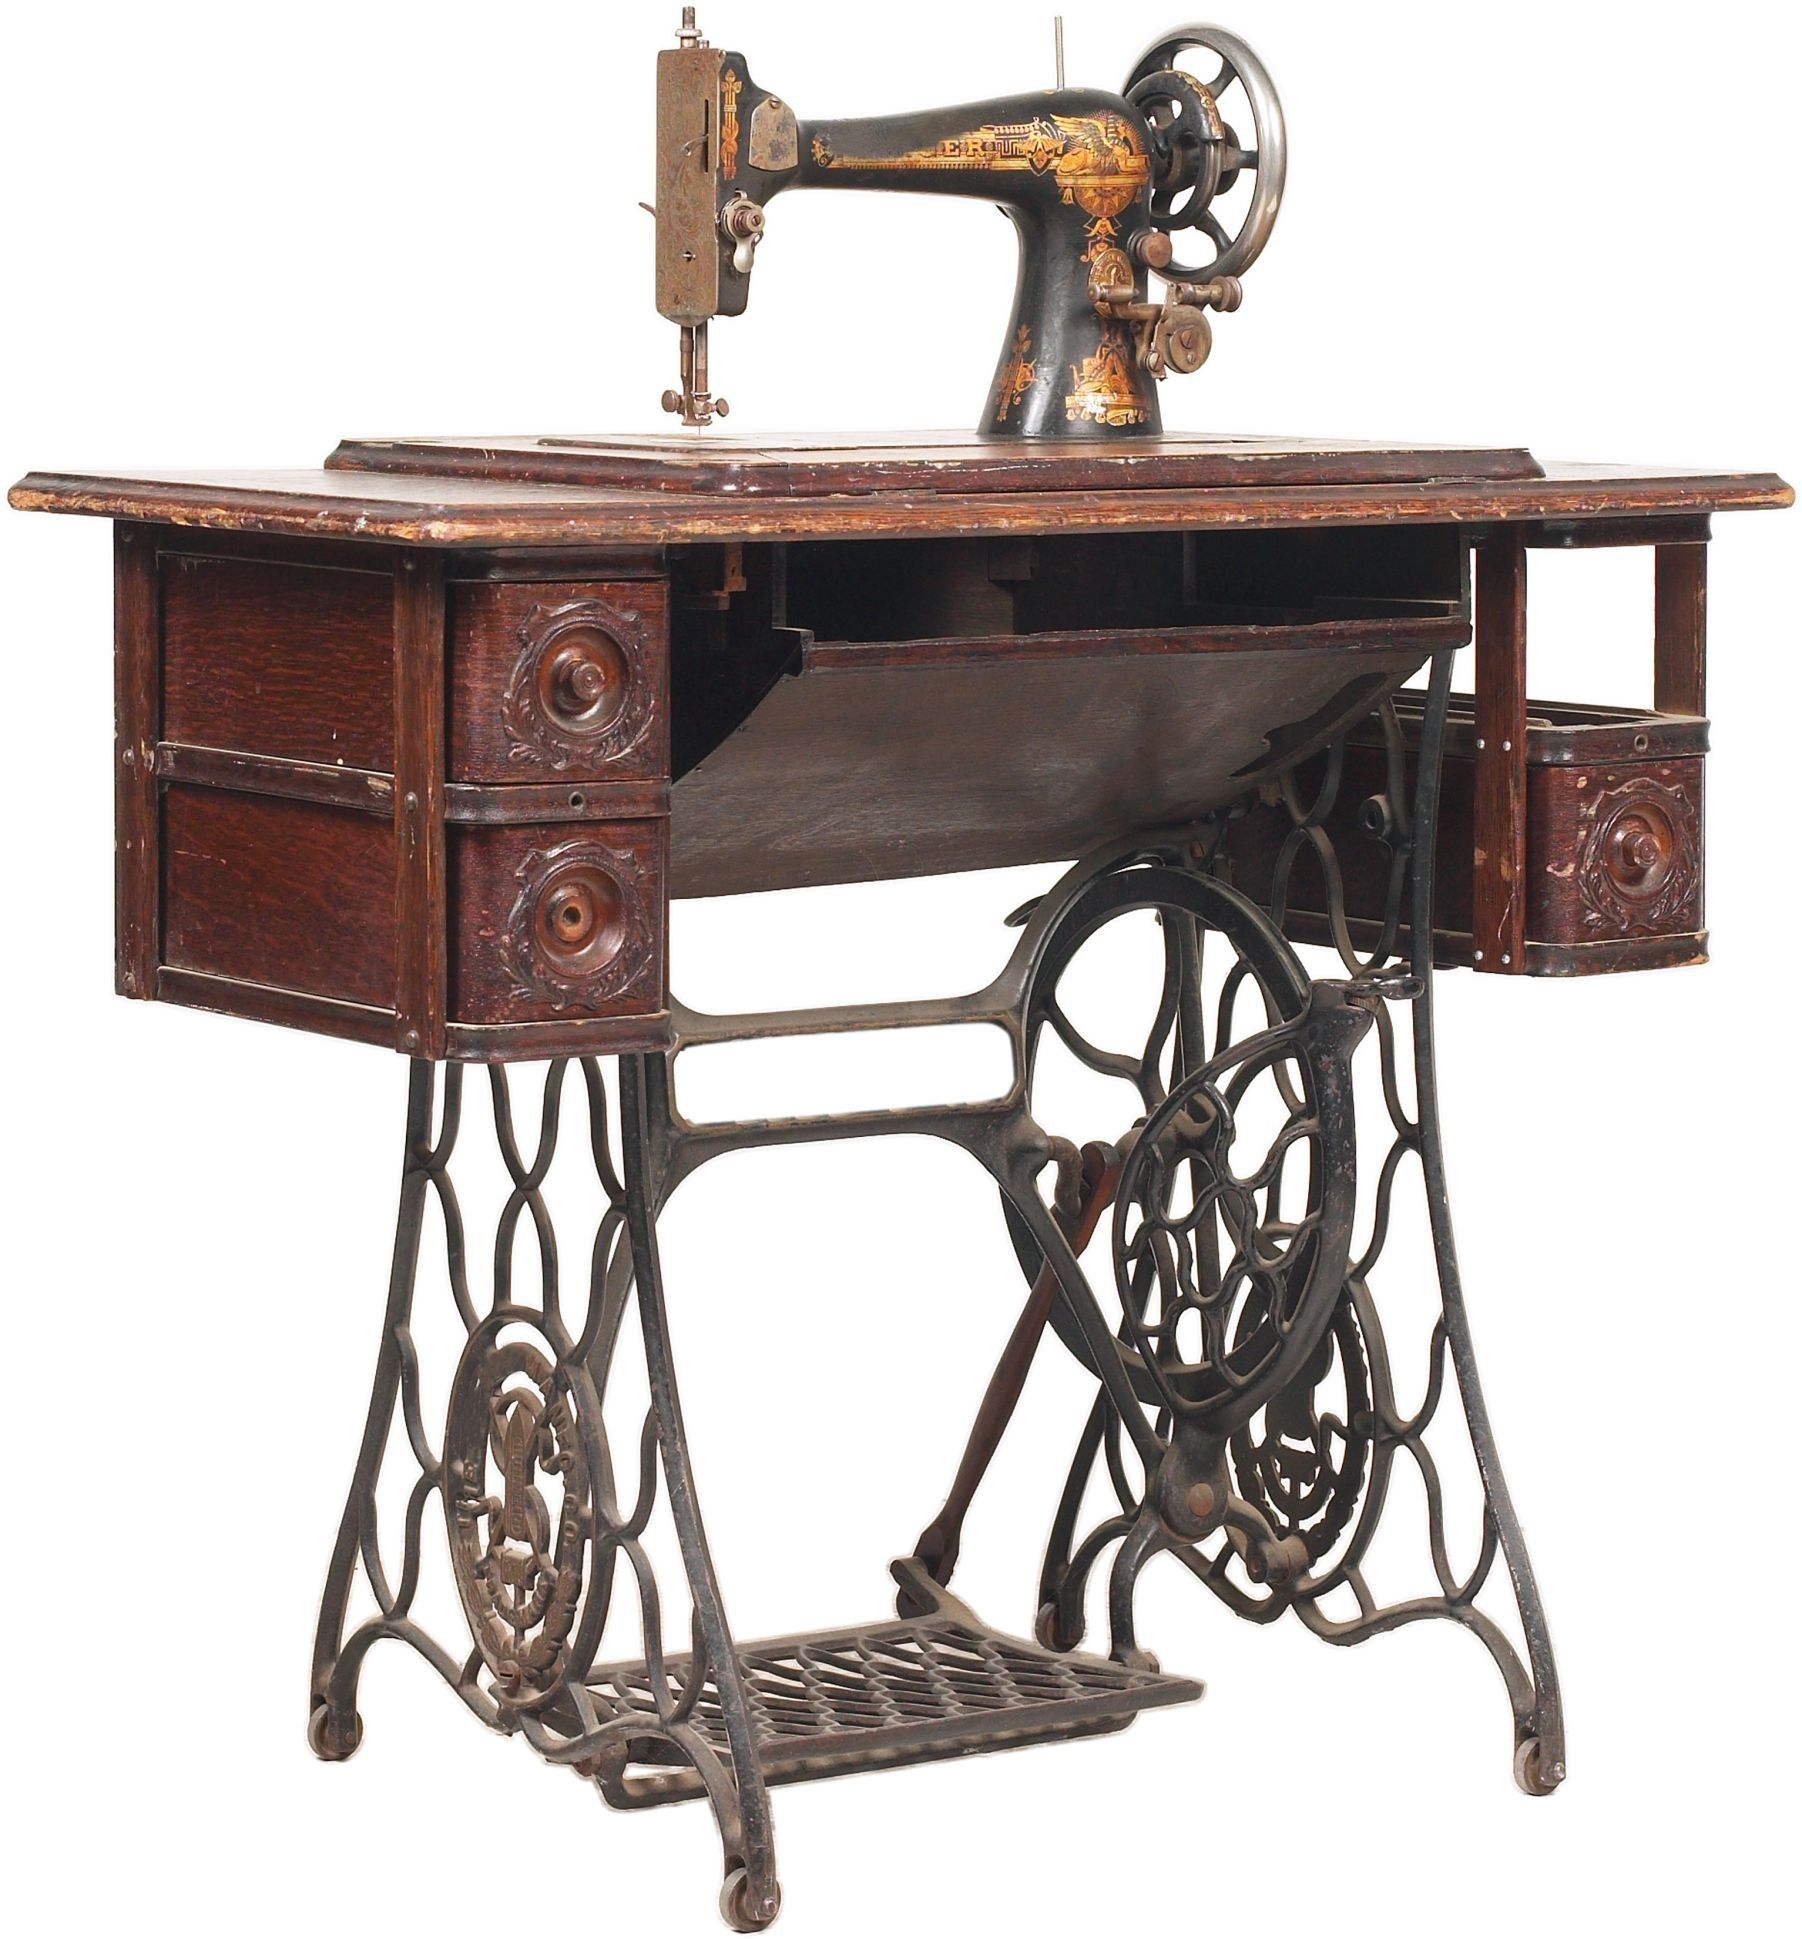 How To Restore The Wooden Desk Of A Vintage Singer Sewing Machine Singer Sewing Machine Antique Sewing Machines Sewing Machine Repair